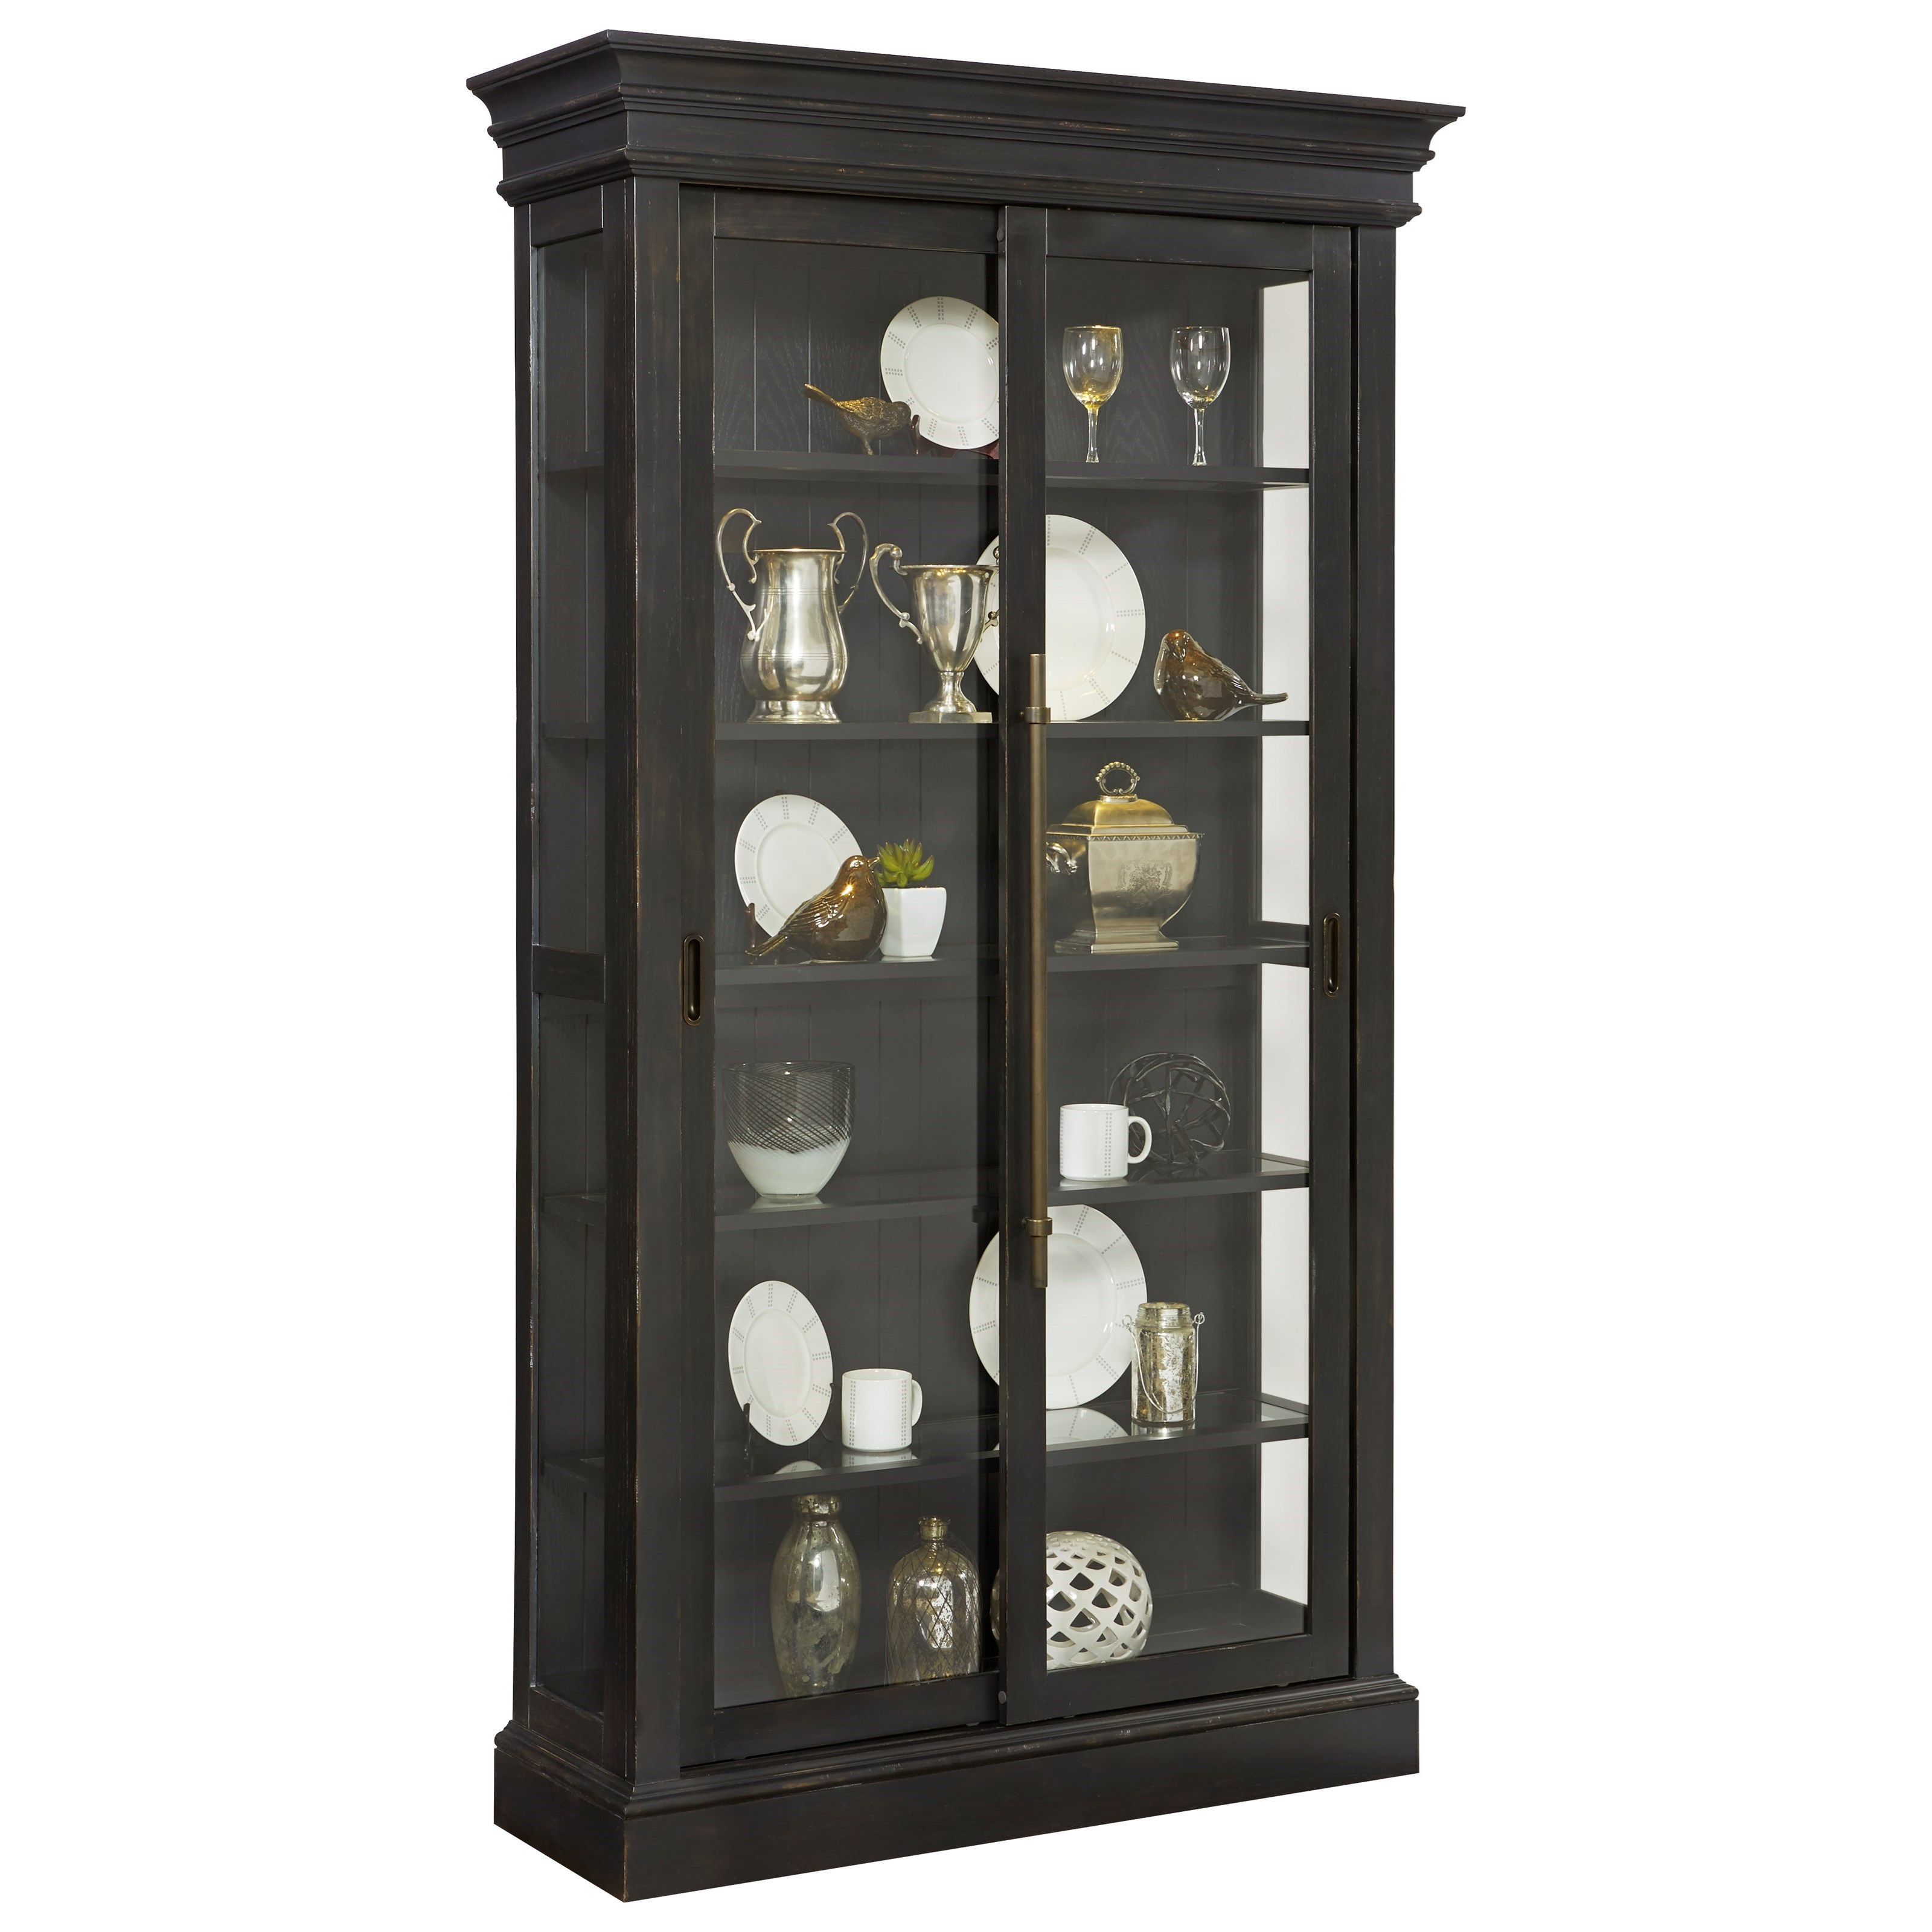 Pulaski Furniture Curios Sliding Door Curio in Charcoal